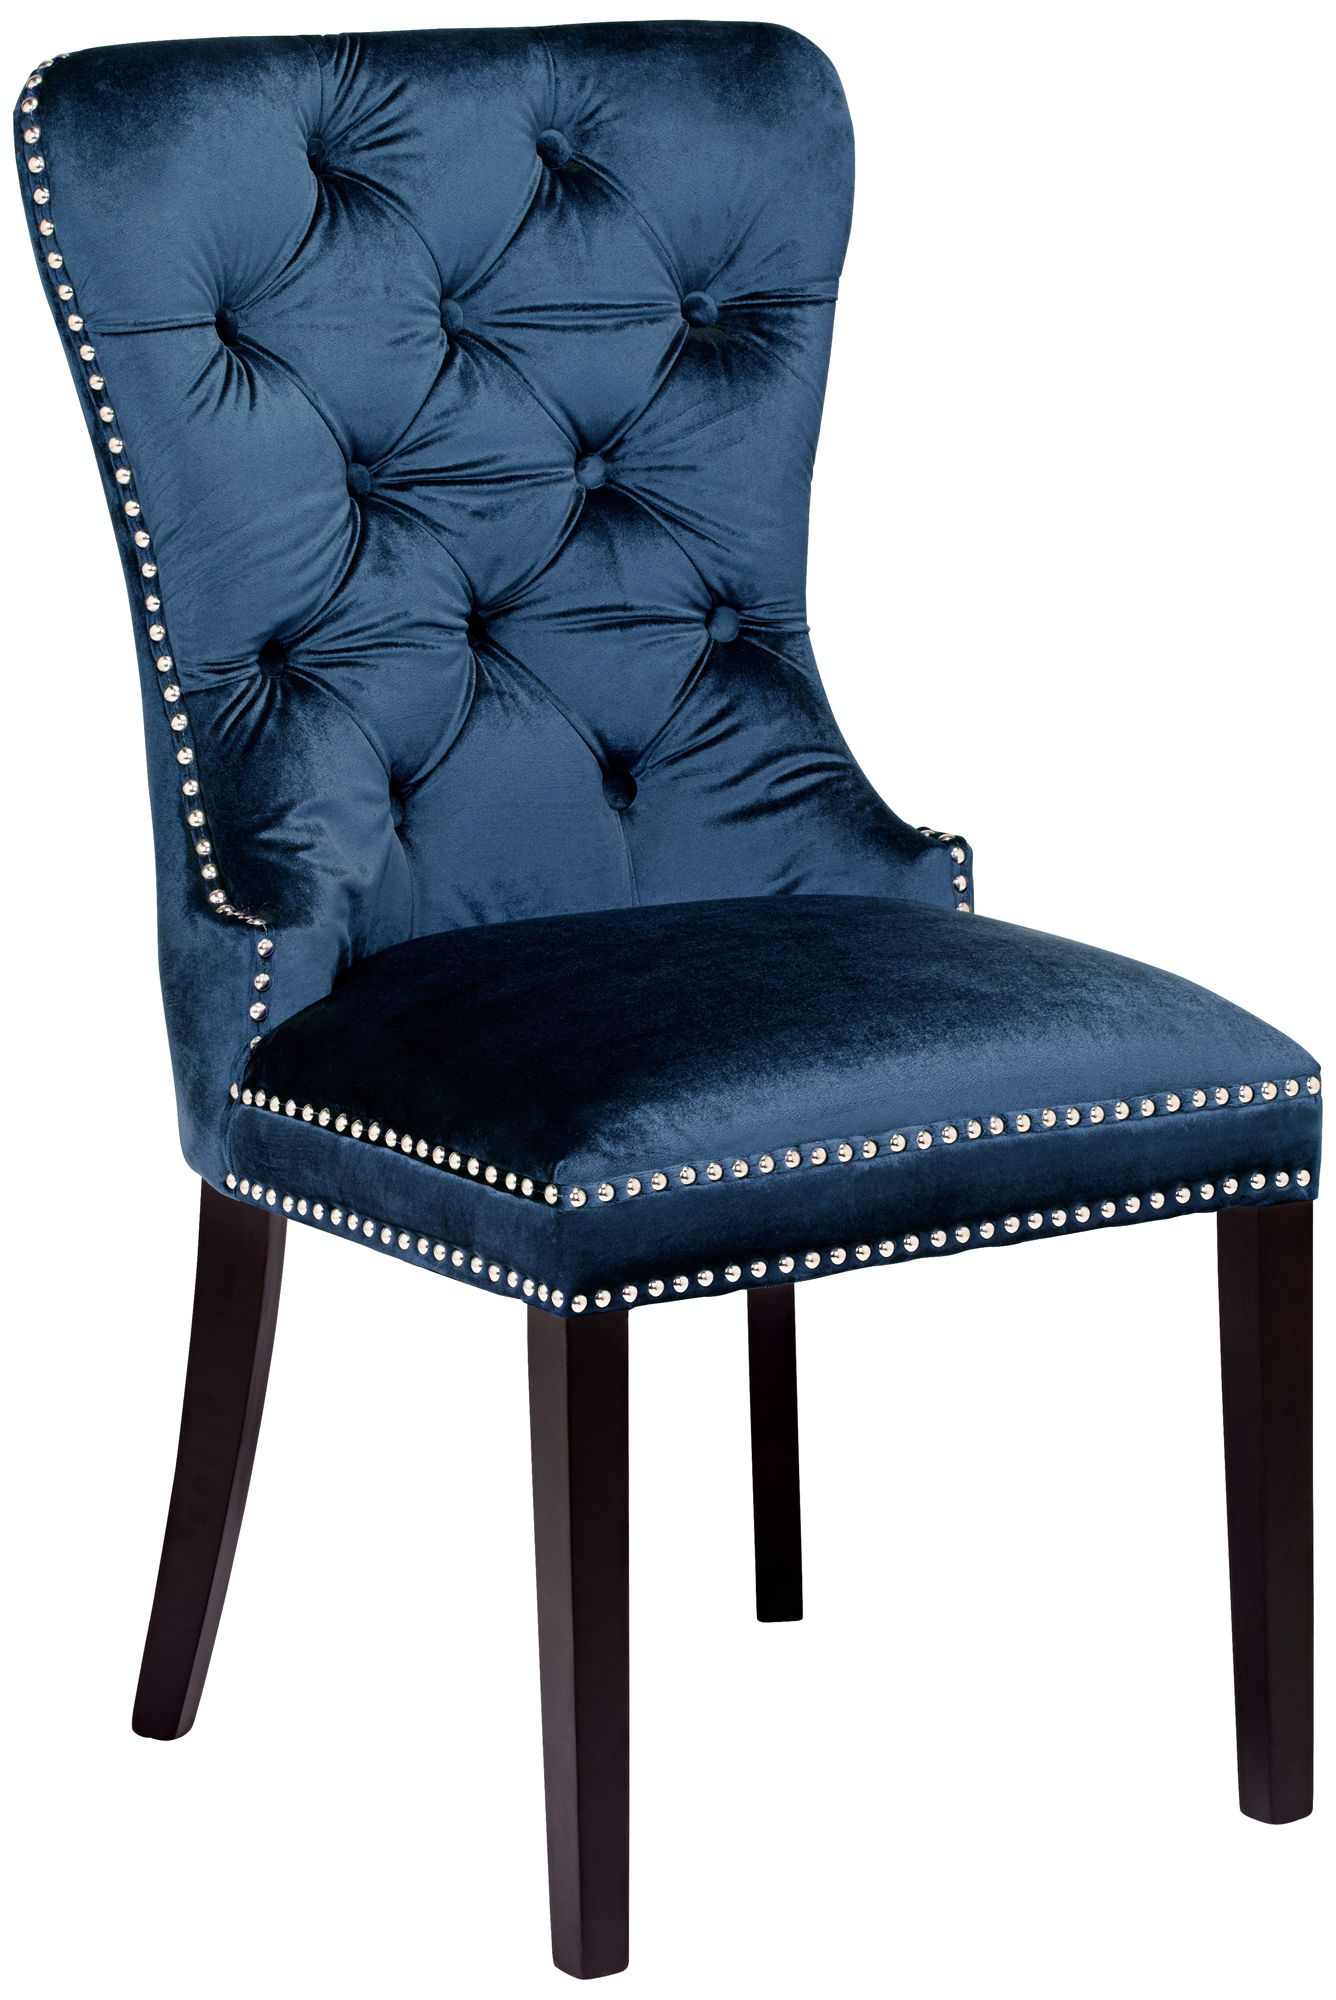 Tufted dining chairs leather tufted dining chair antique for Dining room velvet chairs